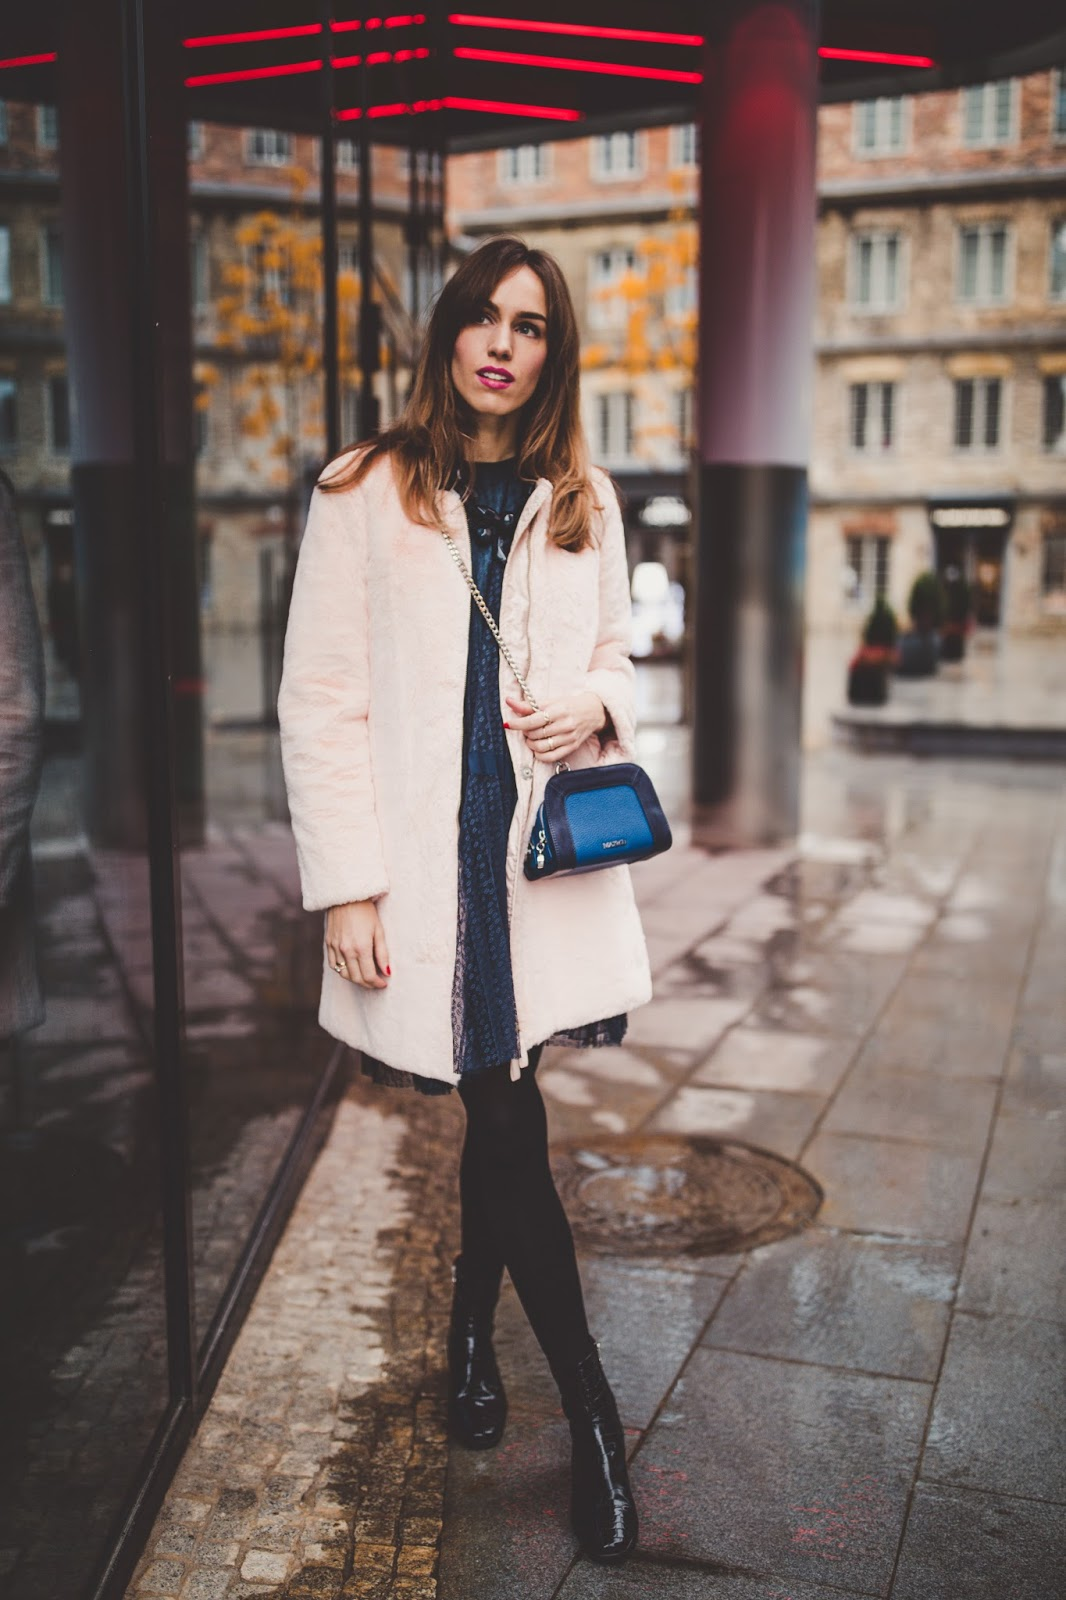 pink teddy coat dress outfit